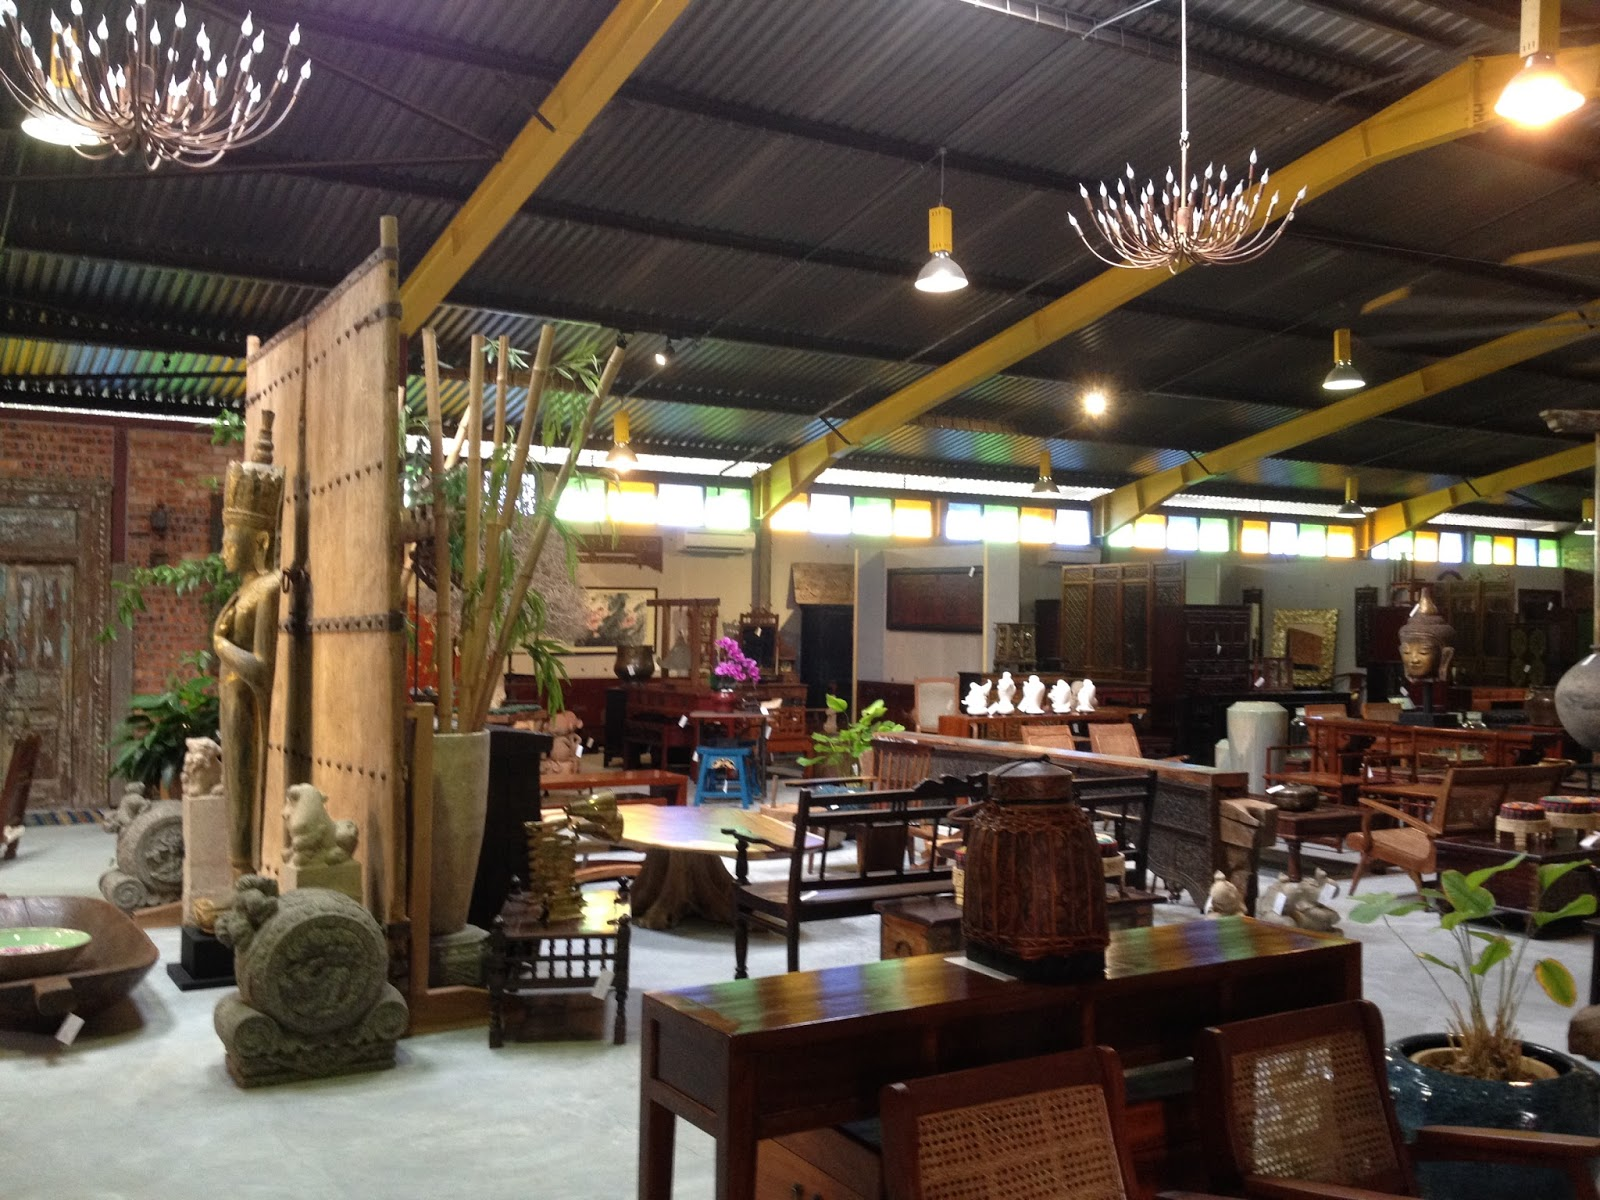 Malaysia and more furniture shopping in kl part 2 for Affordable furniture malaysia